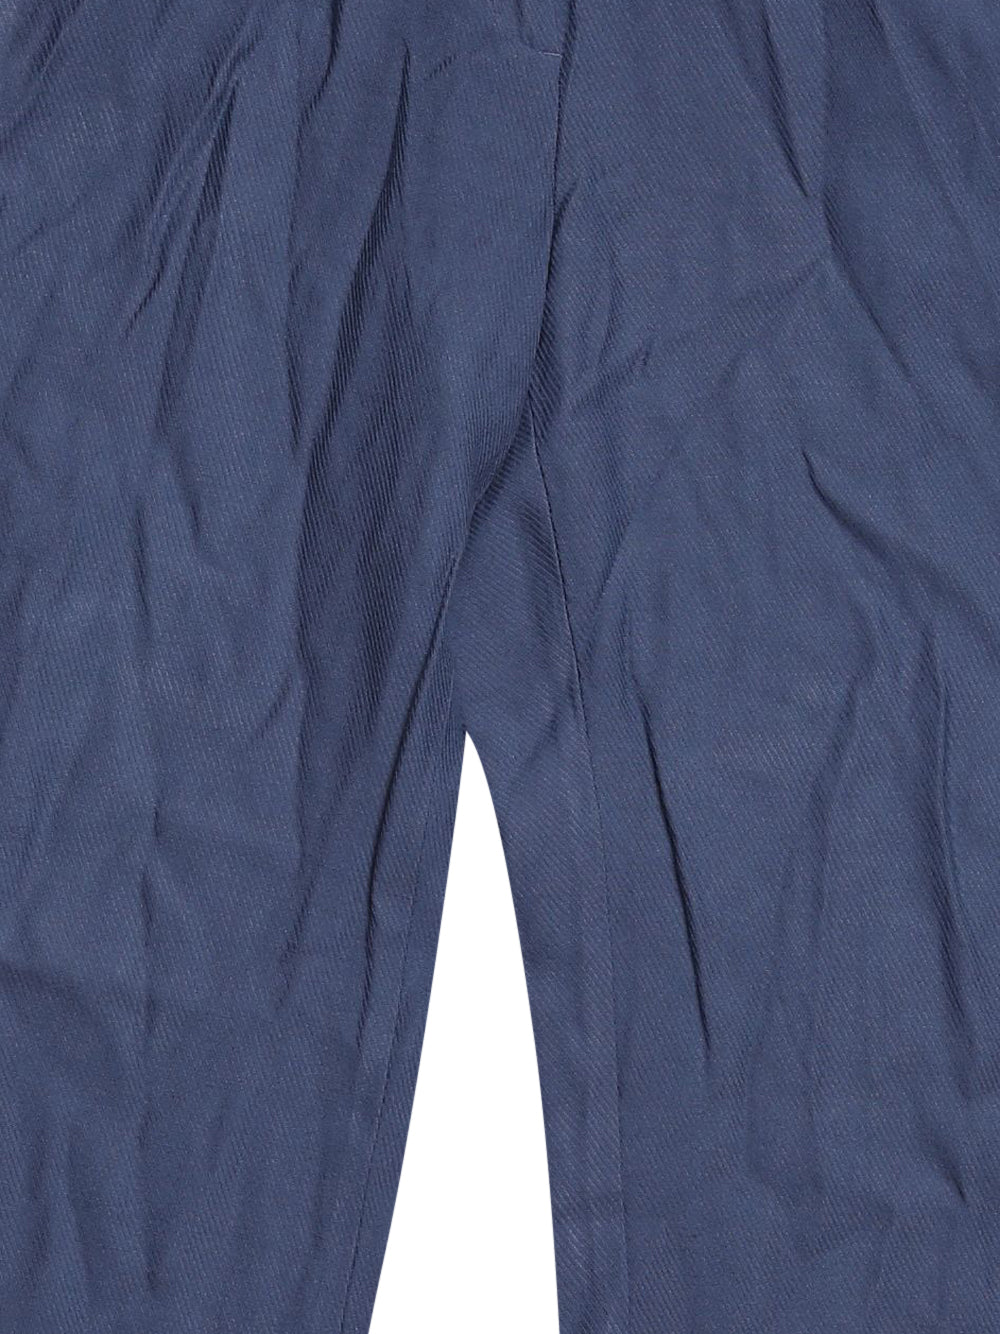 Detail photo of Preloved Massimo Dutti Blue Woman's trousers - size 6/XS